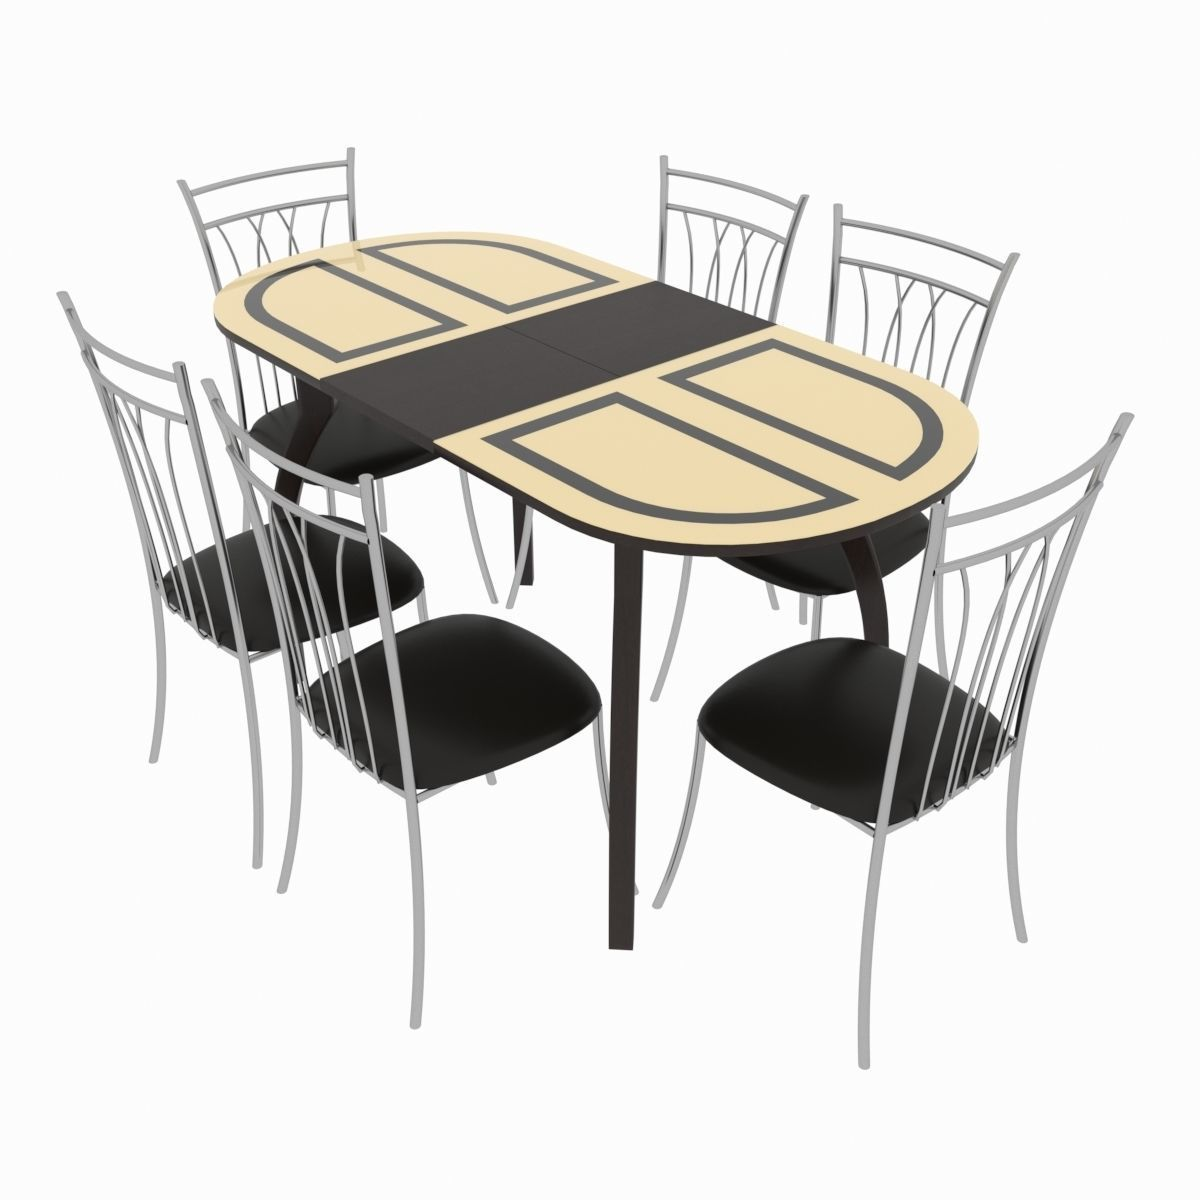 Dining set consisting of a table Milan Venge and chairs 3D